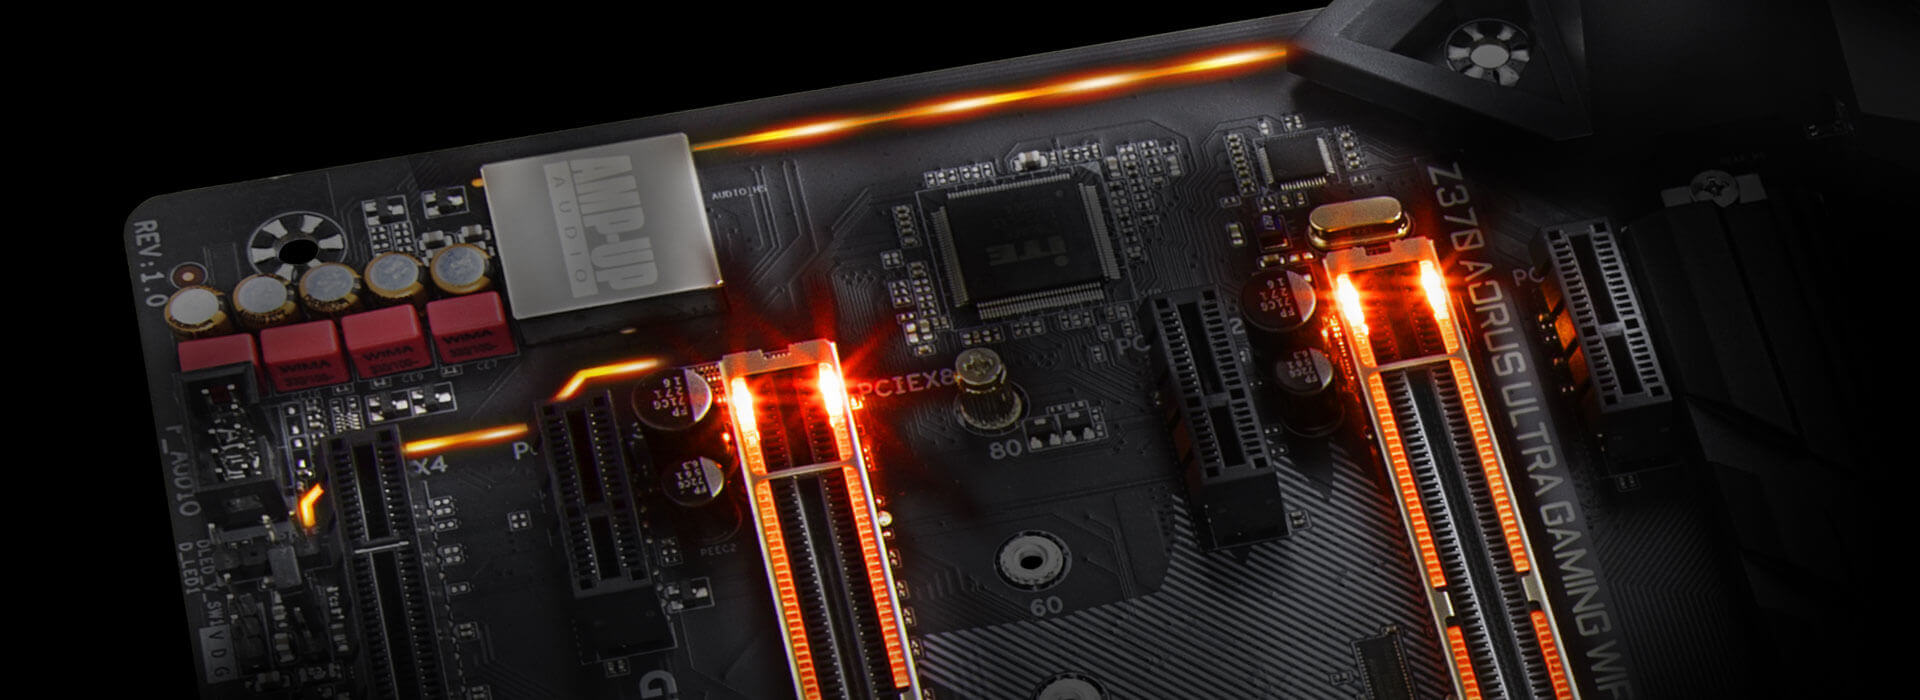 Z370 Aorus Ultra Gaming Wifi Op Power Saver Circuit Diagram Jumbo Intelligent Multi Light Zones Are Equipped With High Brightness Rgb Leds Namely The Memory Audio Pci Express And Swappable Overlay For Accent Led